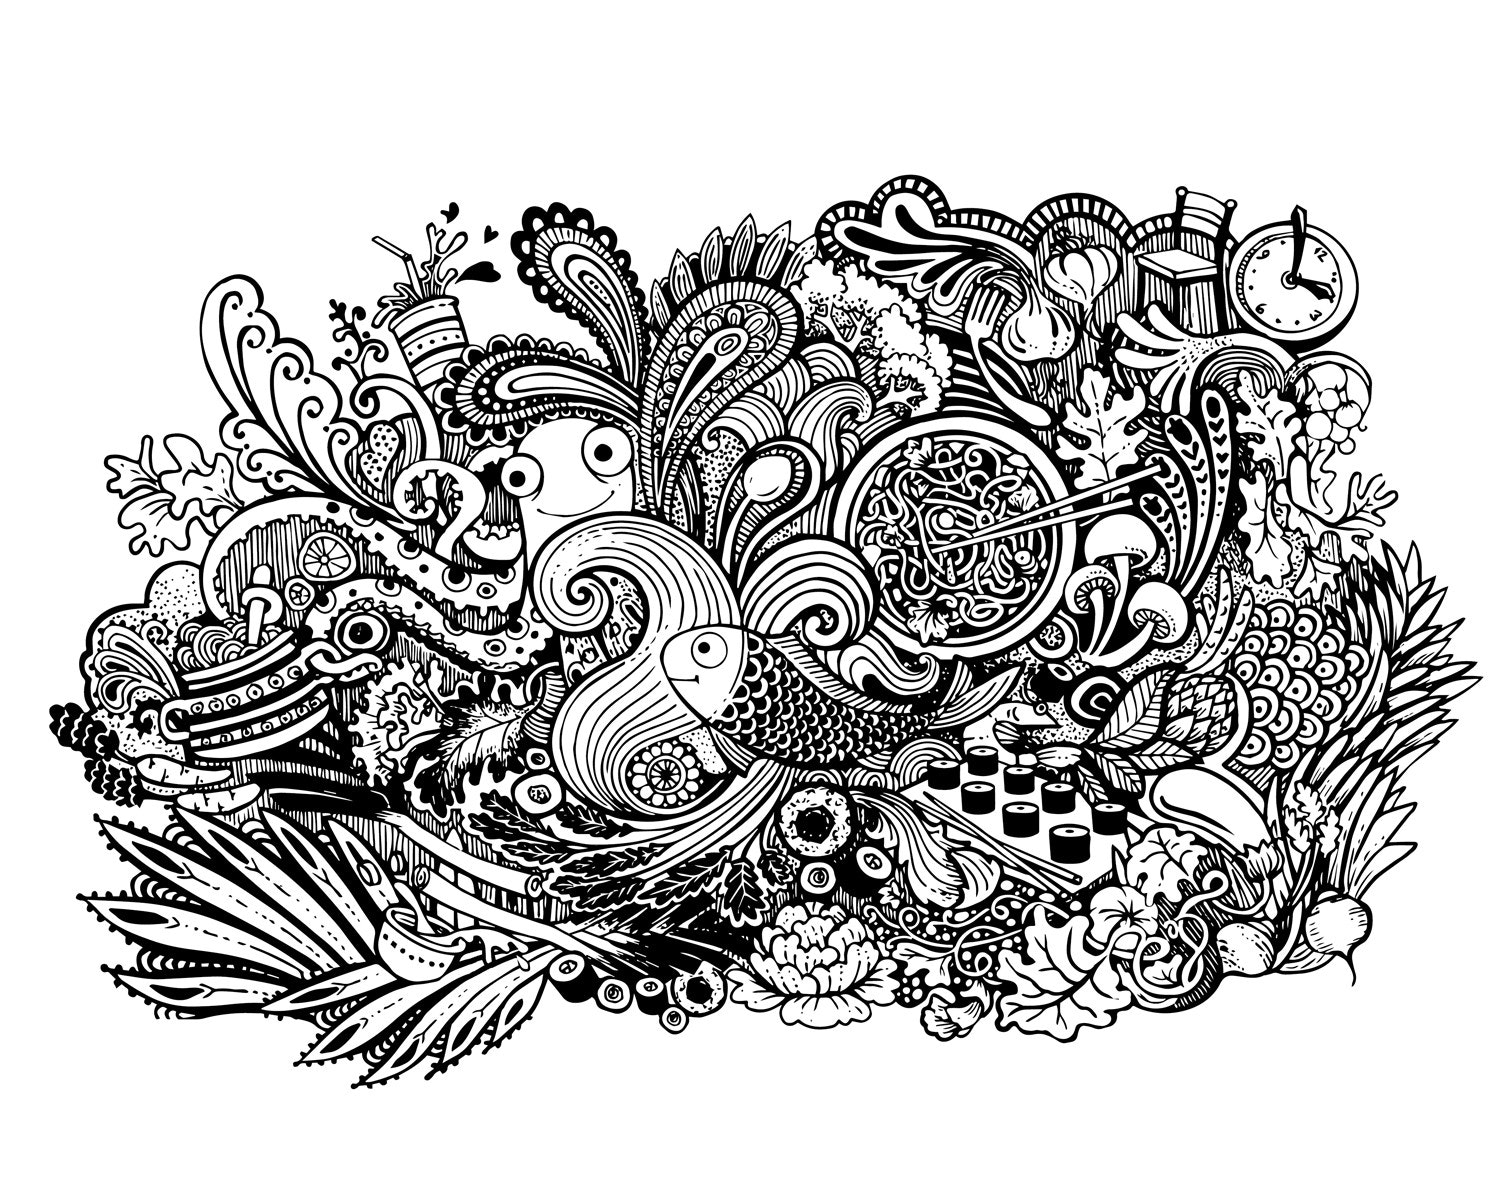 An intricate doodle style illustration